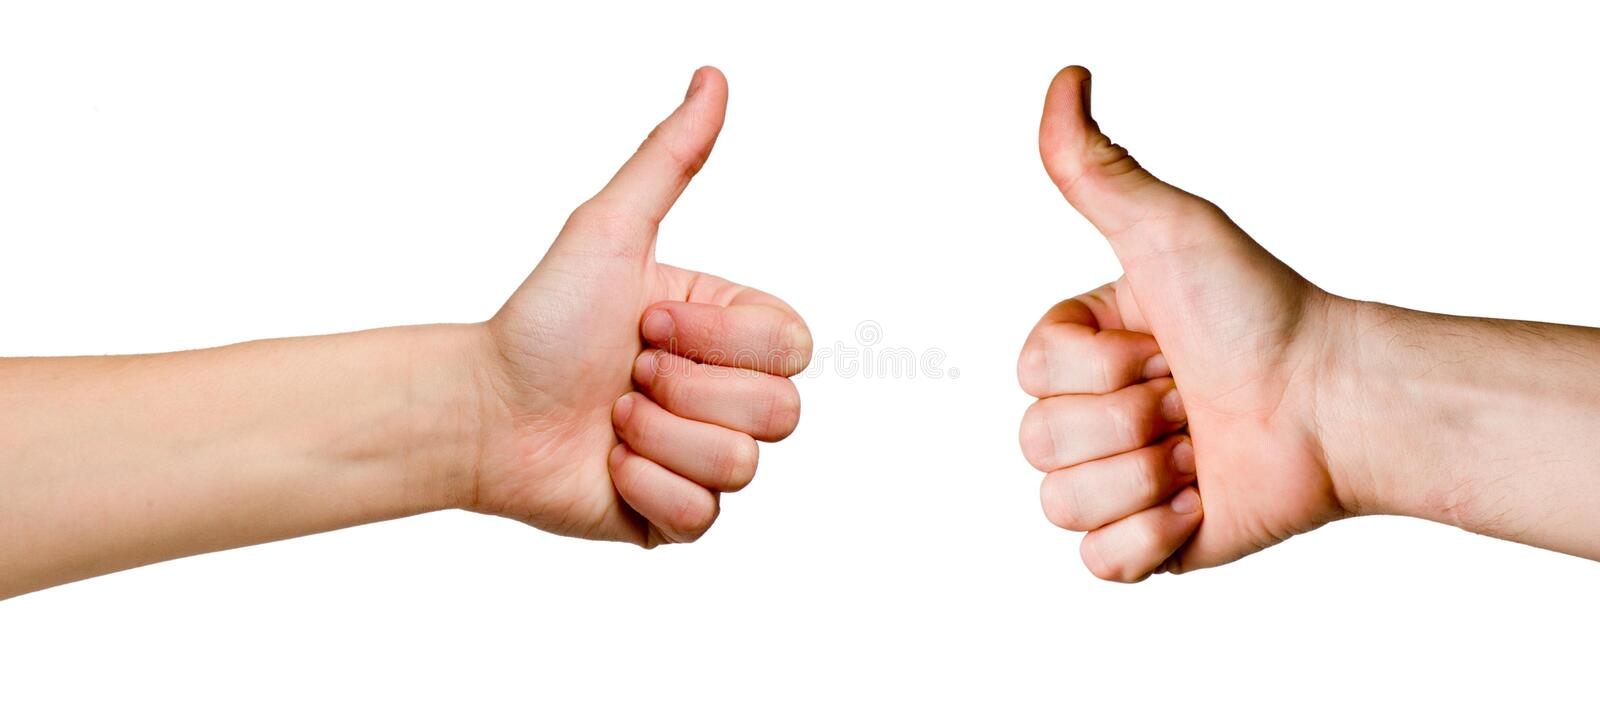 OK gestures royalty free stock images